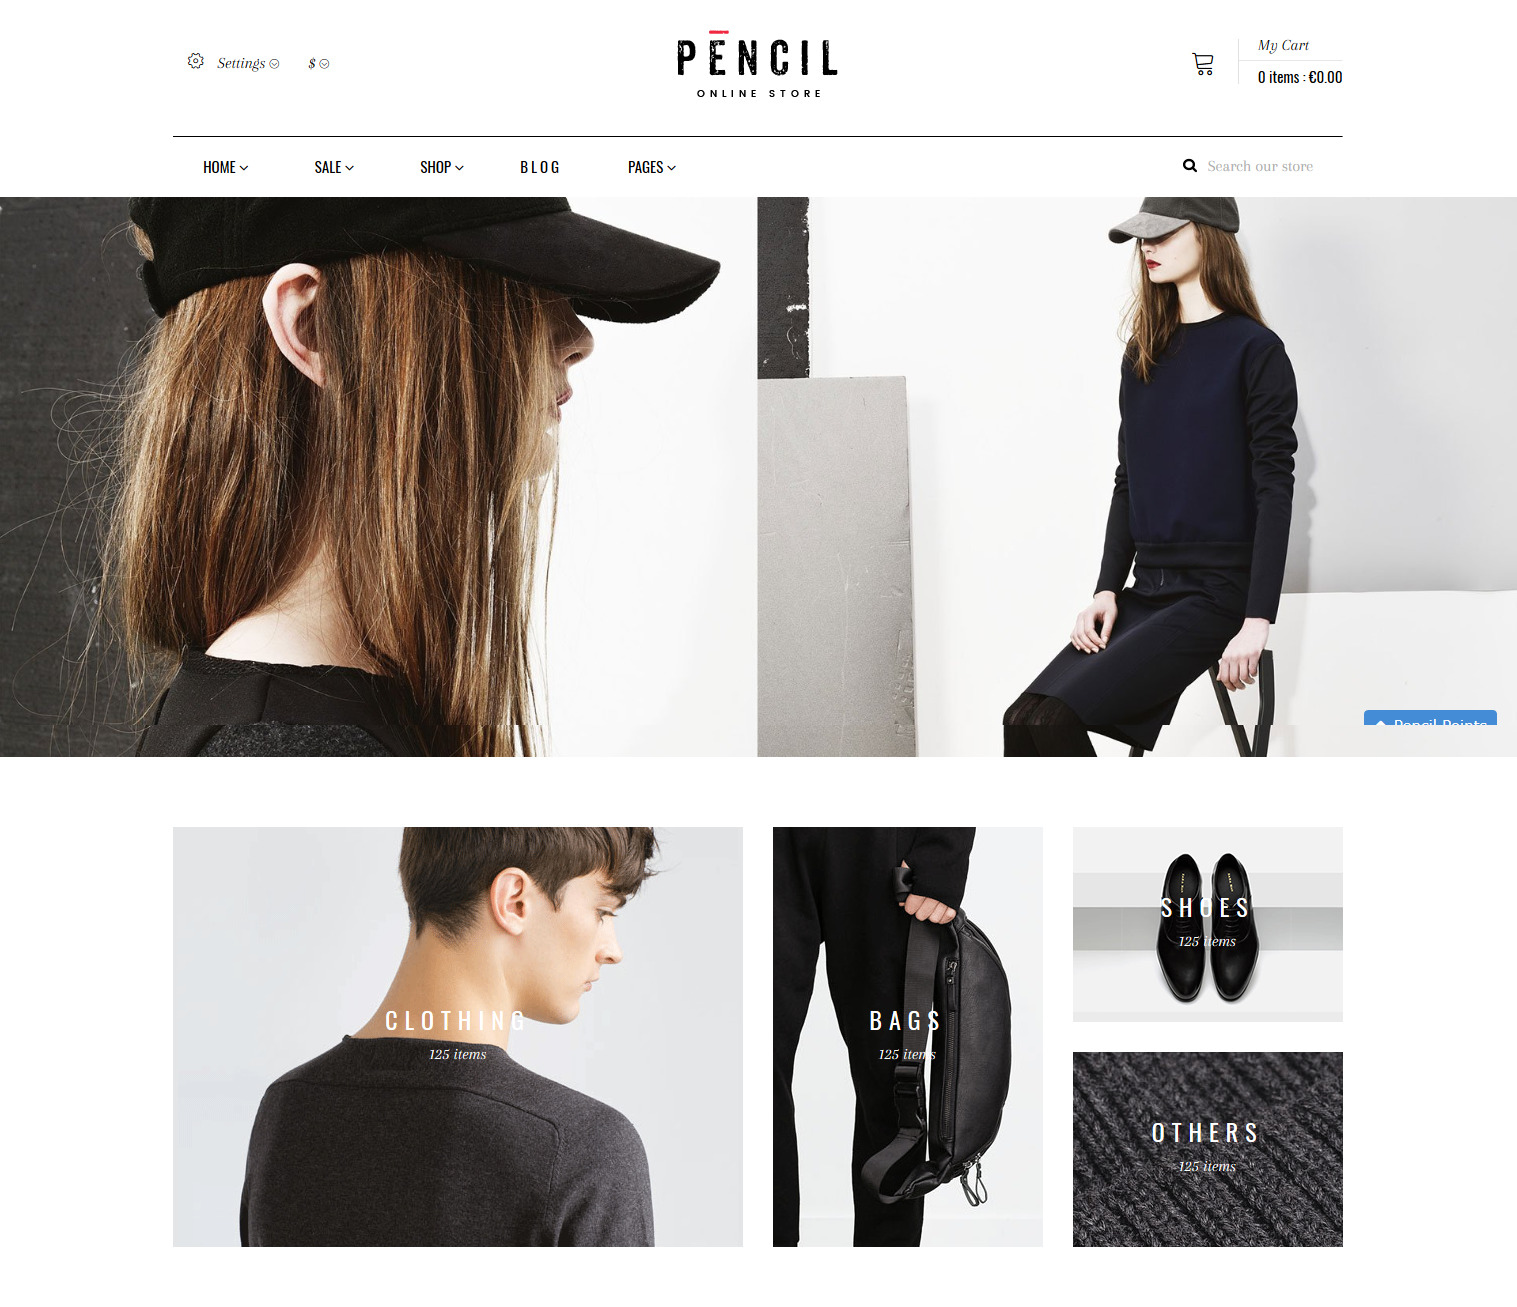 Pencil theme for Shopify